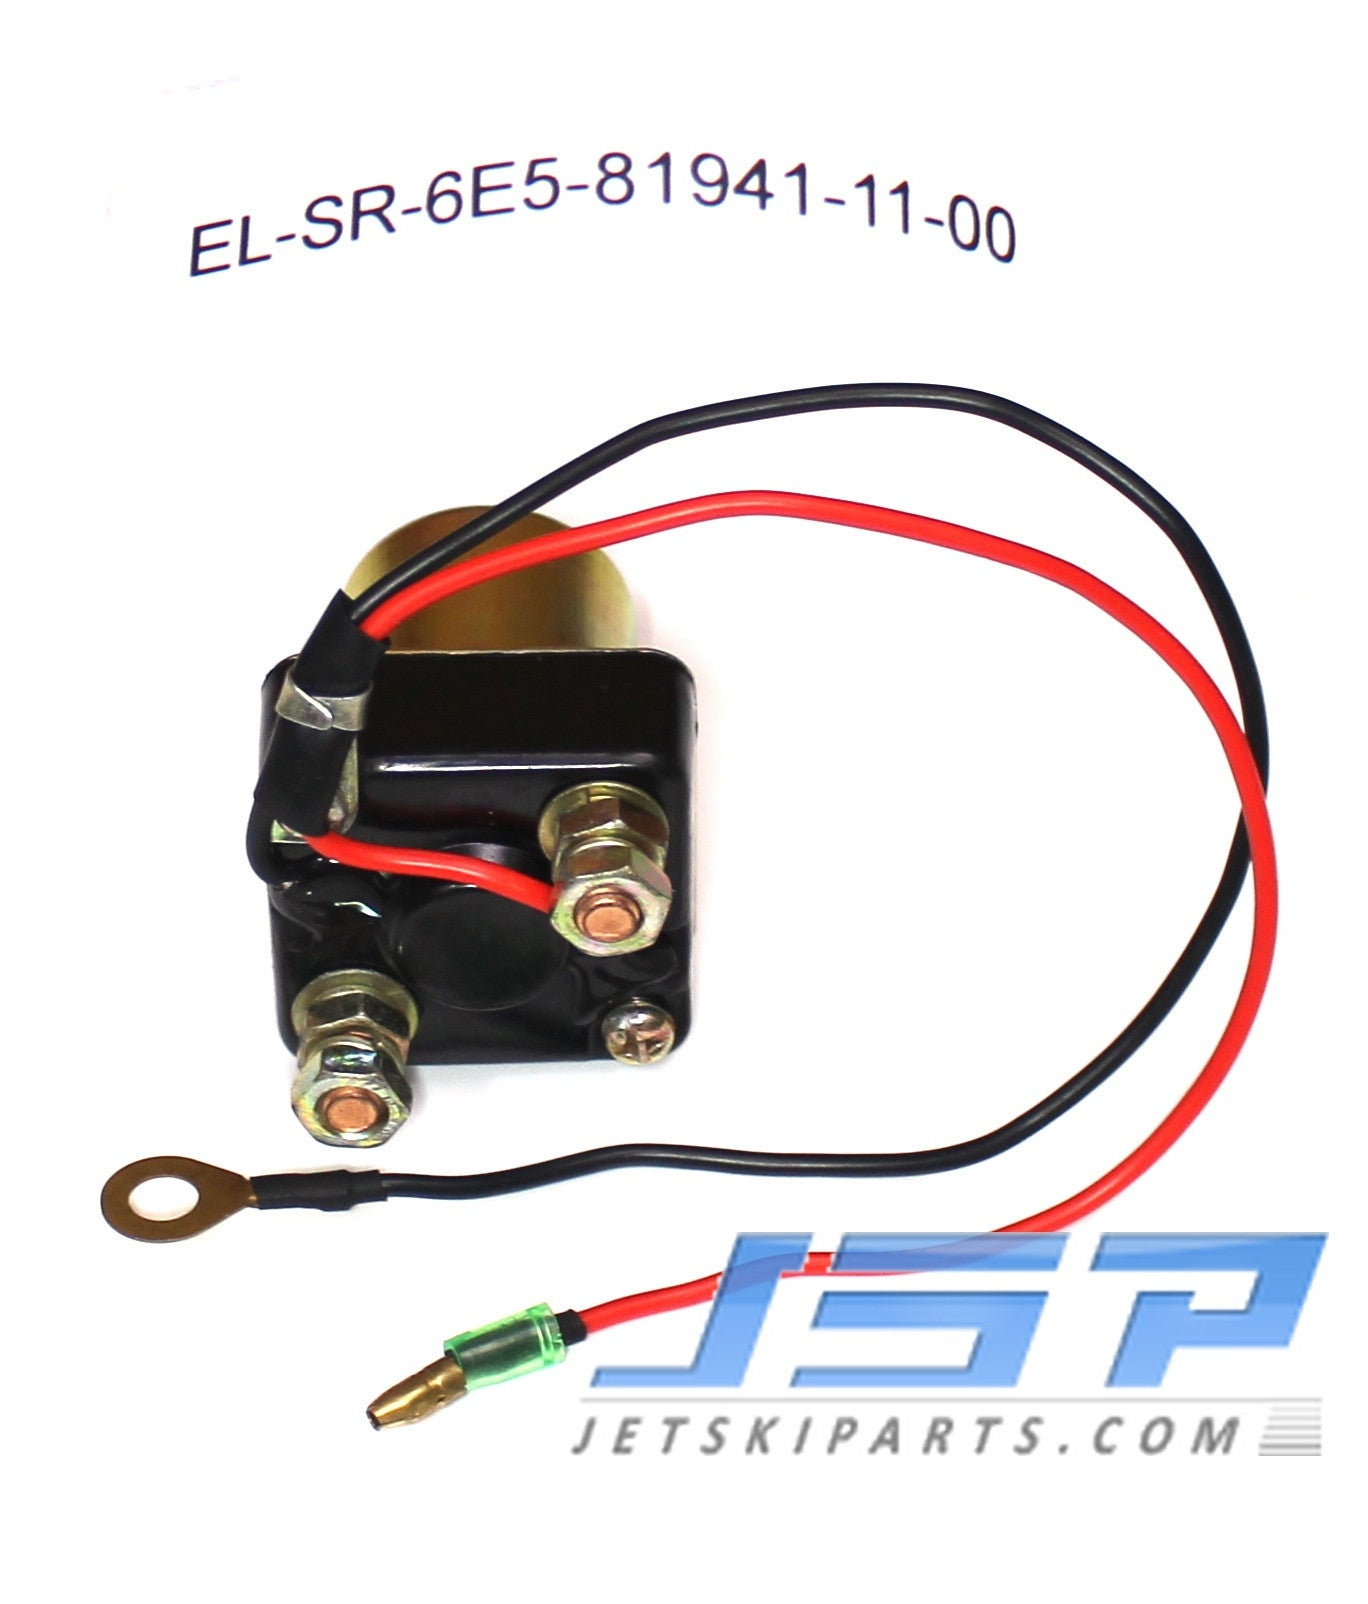 Yamaha Outboard Trim Relay Solenoid Boat 115 135 150 175